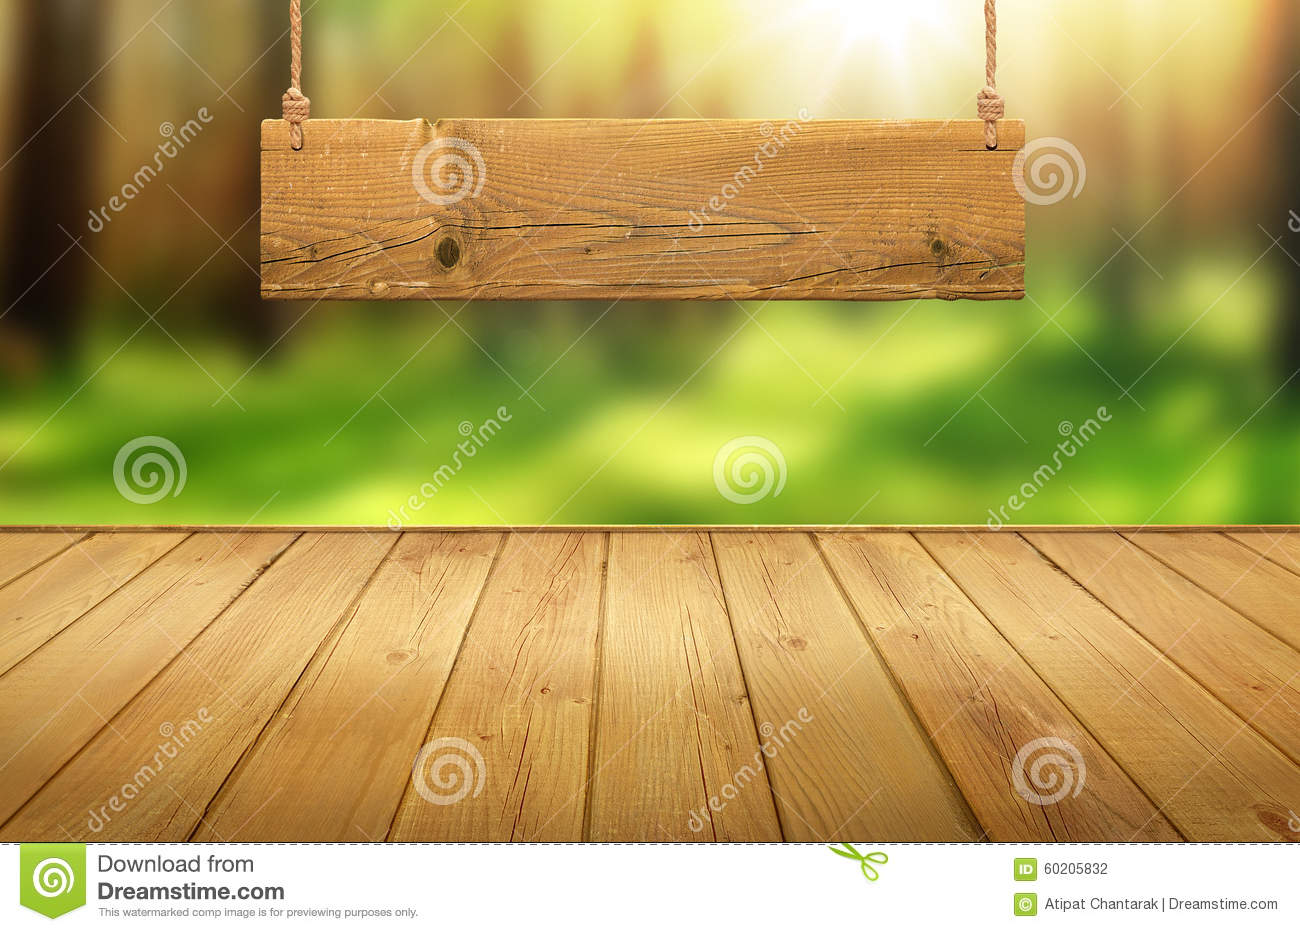 Background image table - Wood Table With Hanging Wooden Sign On Green Forest Blurred Background Stock Photography